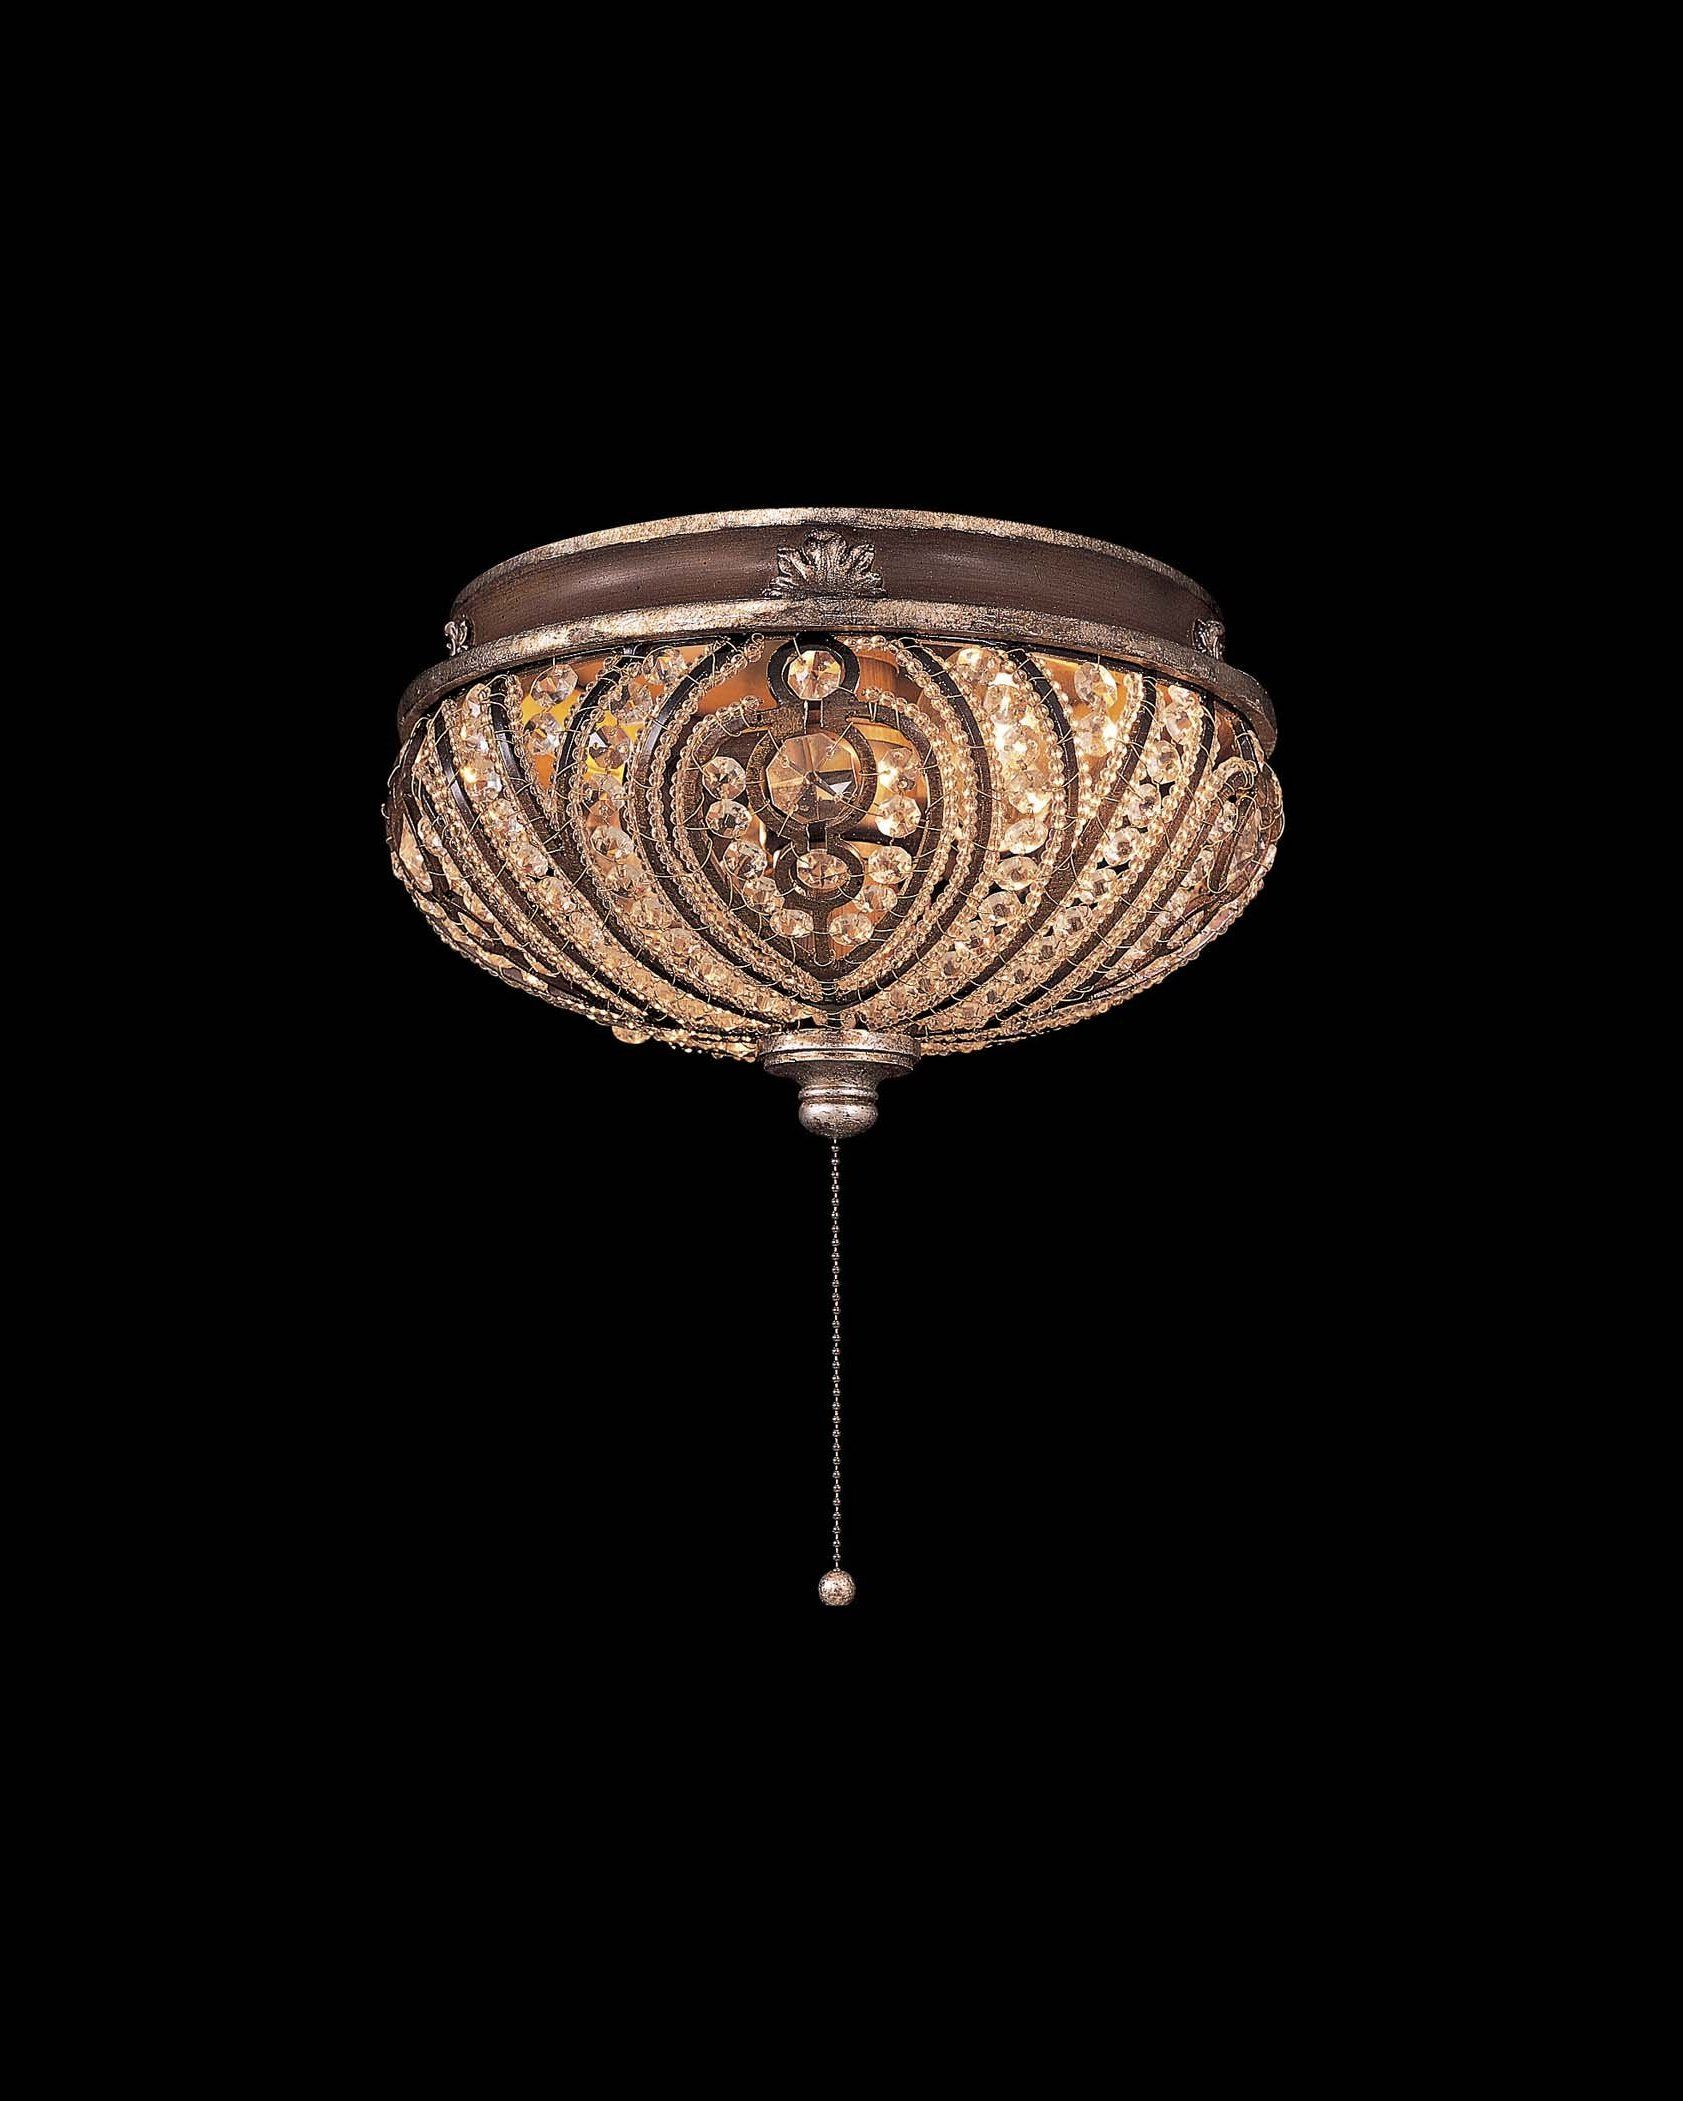 Portrayal Of Pull Chain Ceiling Light Fixture For